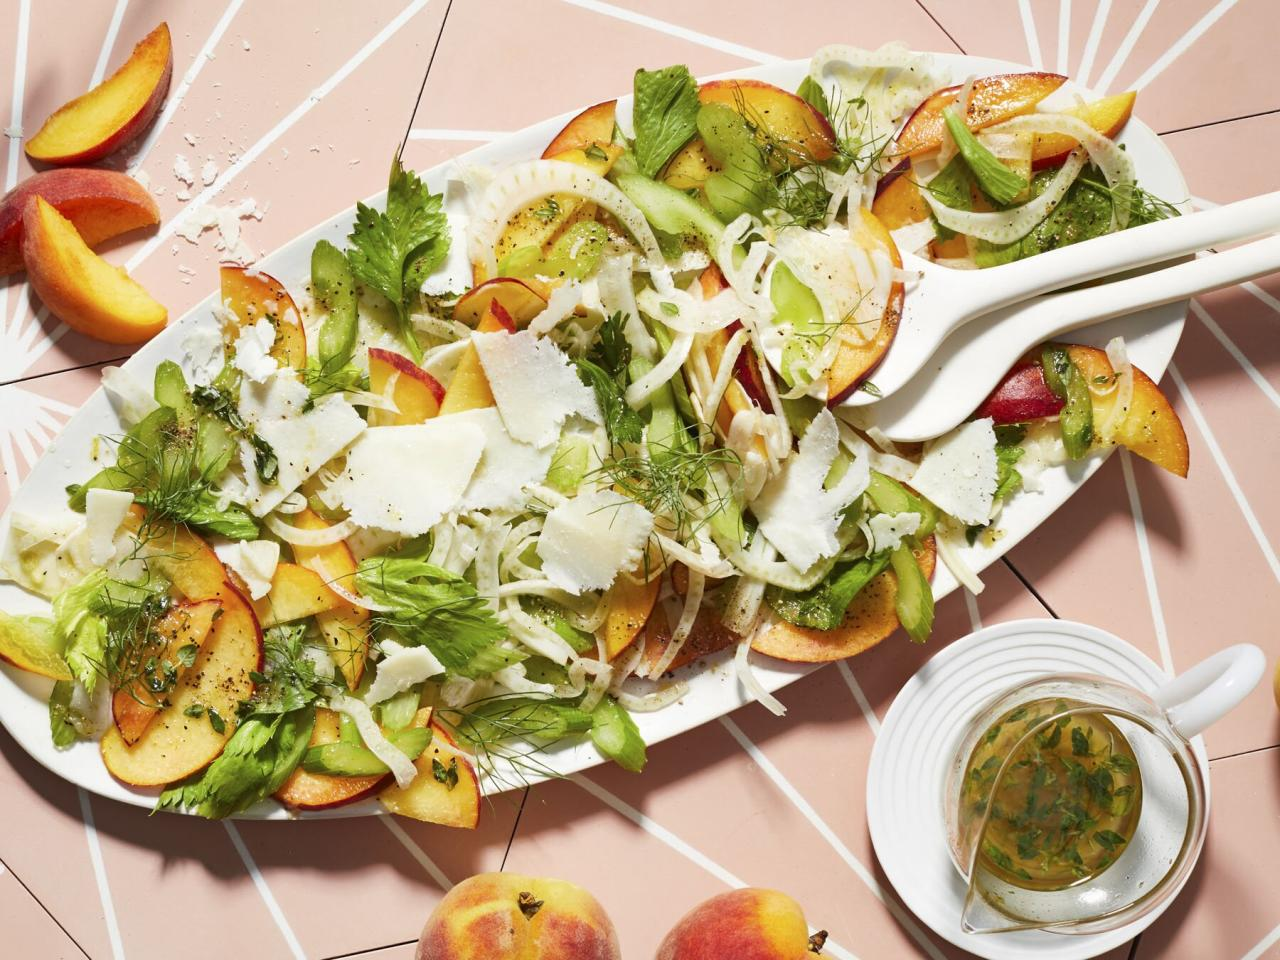 """<p>This salad is crunchy, sweet, salty, bright, and refreshing—in other words, it's perfect for summer. Peak-of-freshness peaches are the way to go here: If they're still ripe, but a little firm, that's perfect. Bonus points if you get them at a roadside stand. If you can find fennel with intact fronds, get that rather than fennel with the tops cut off—the fronds help make the salad feel special. Serve with flaky white fish and a nice glass of white wine or rosé. </p> <p><a href=""""https://www.myrecipes.com/recipe/peach-fennel-salad-pecorino"""">Peach-Fennel Salad with Pecorino Recipe</a></p>"""